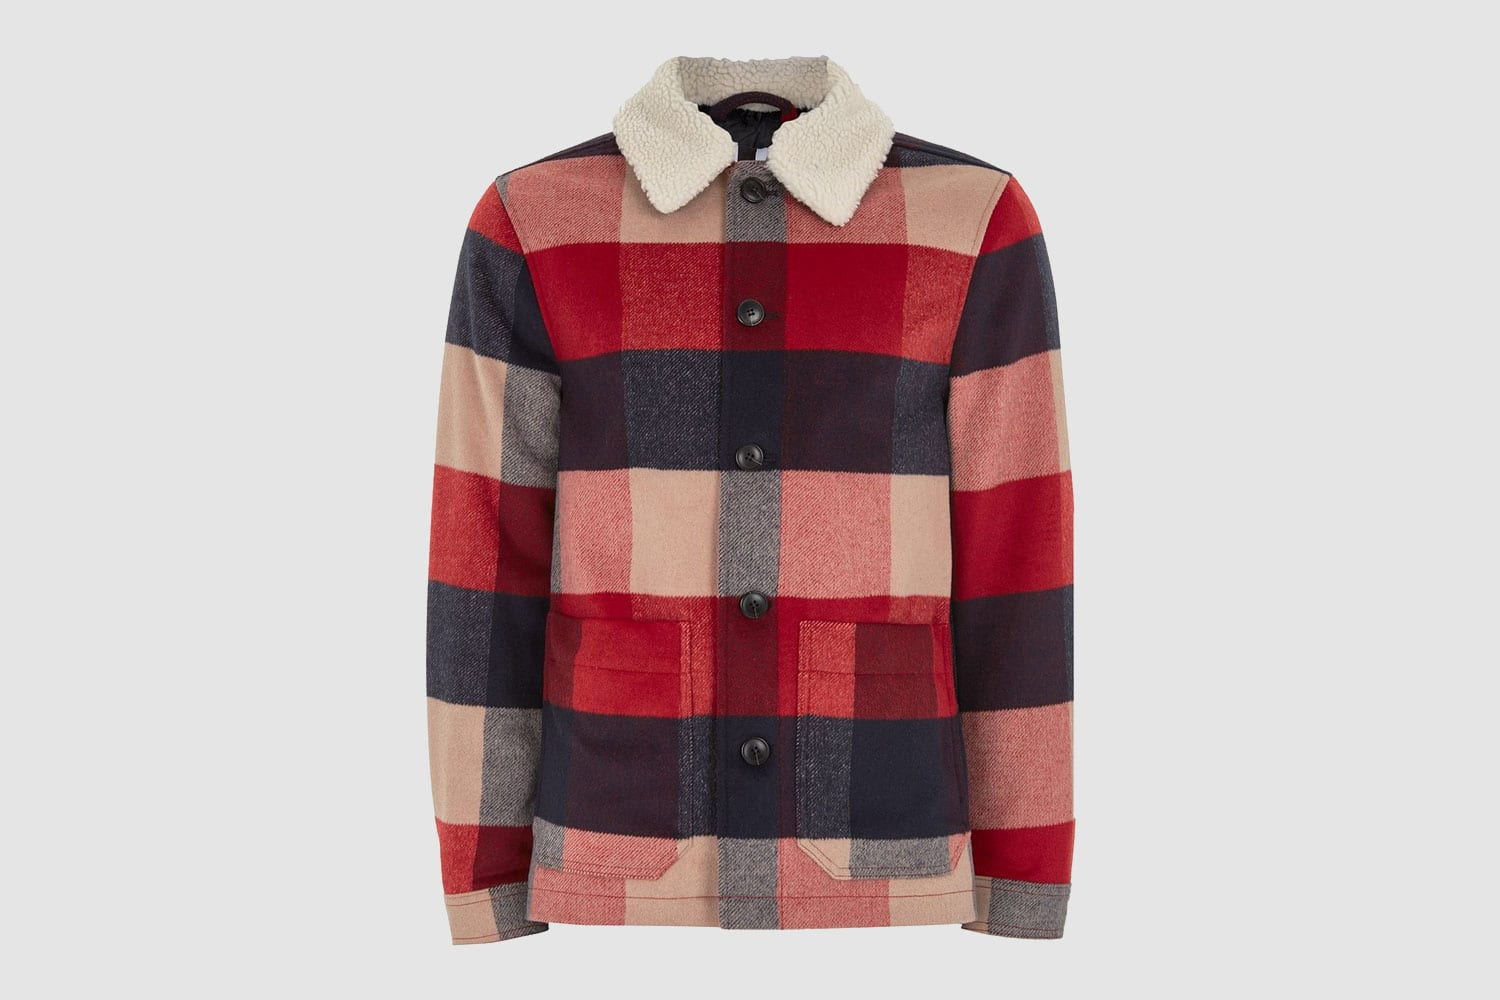 Topman-Checked-Jacket